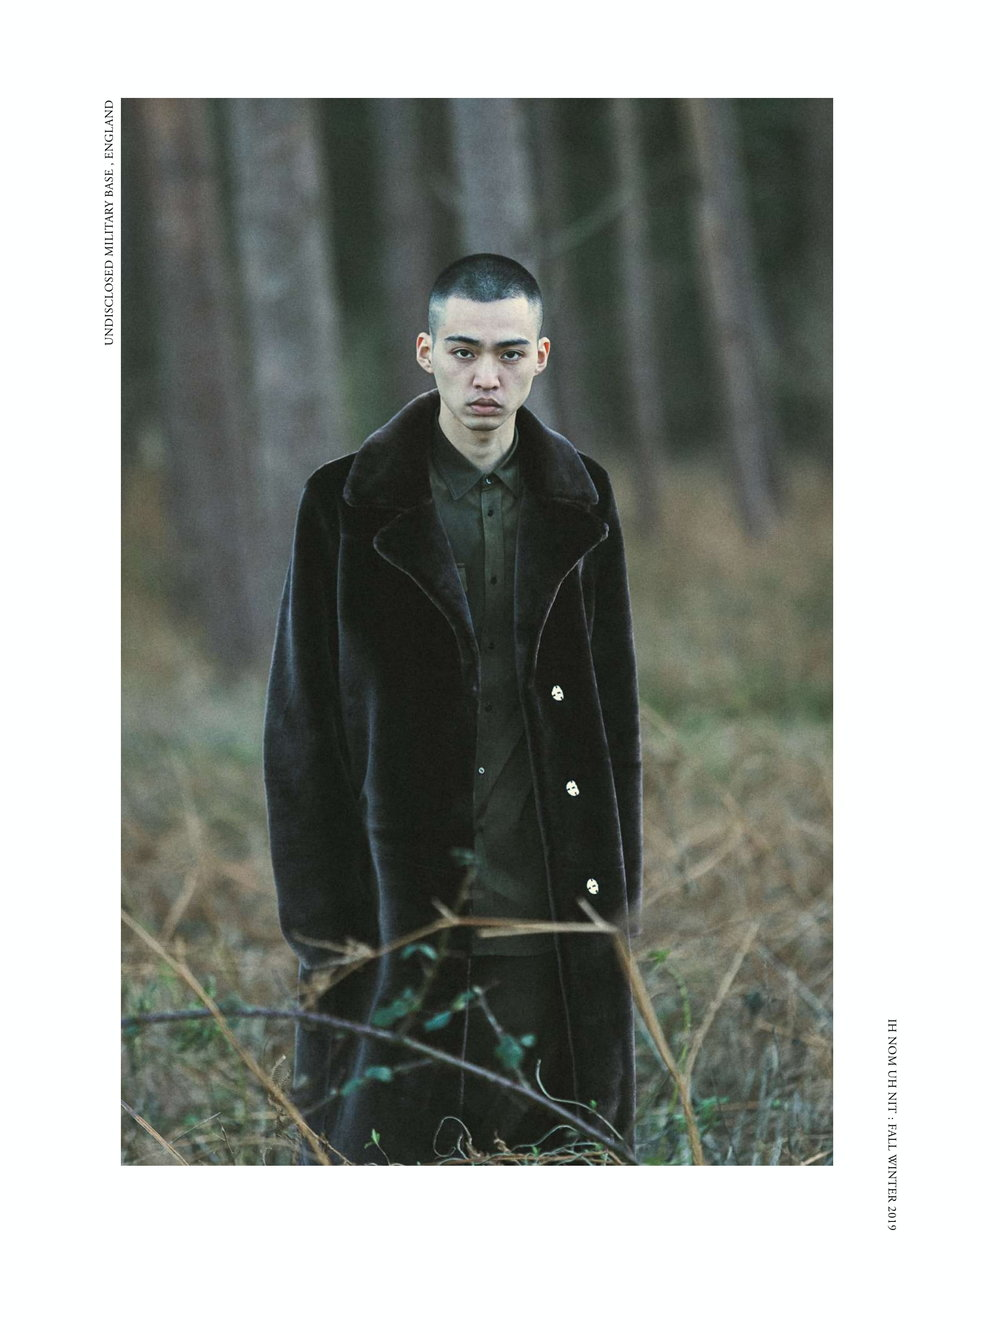 FW19 MAN LOOK BOOK -22.jpg